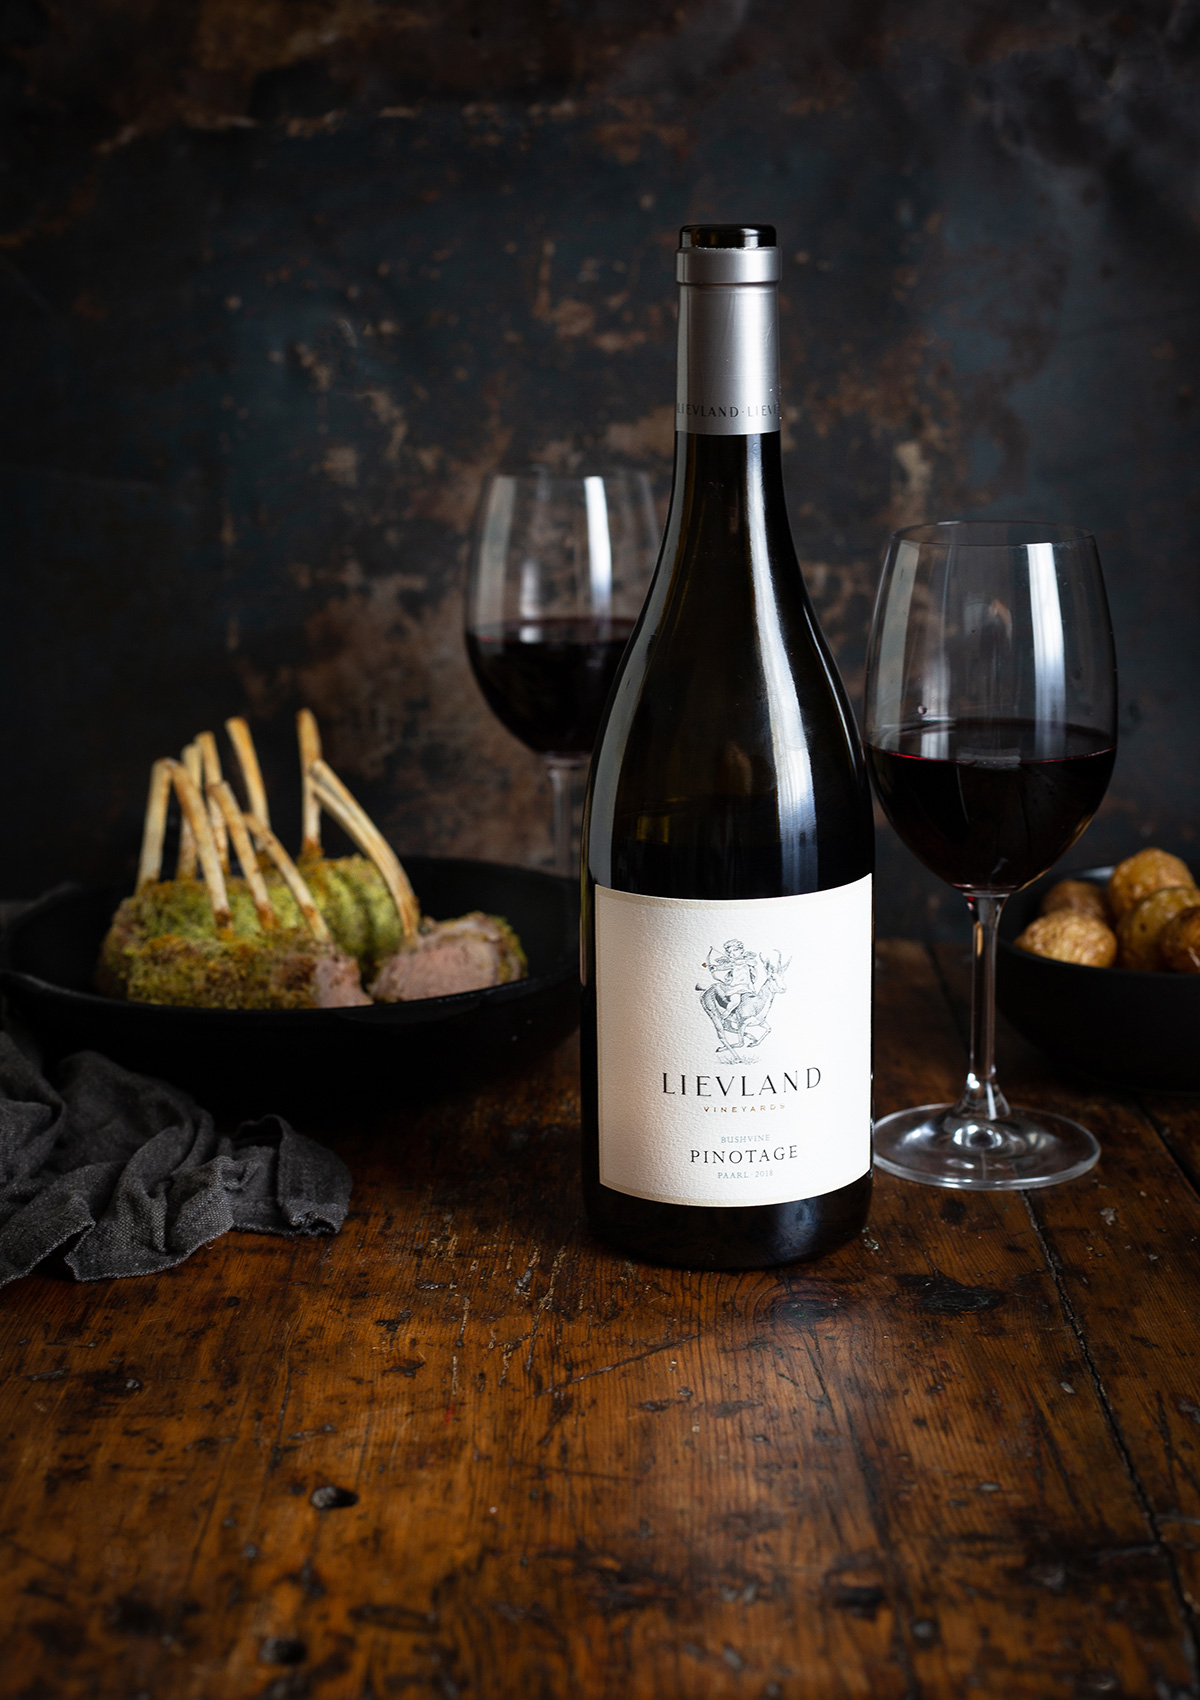 Herb crusted rack of lamb recipe and Lievland Vineyards Pinotage